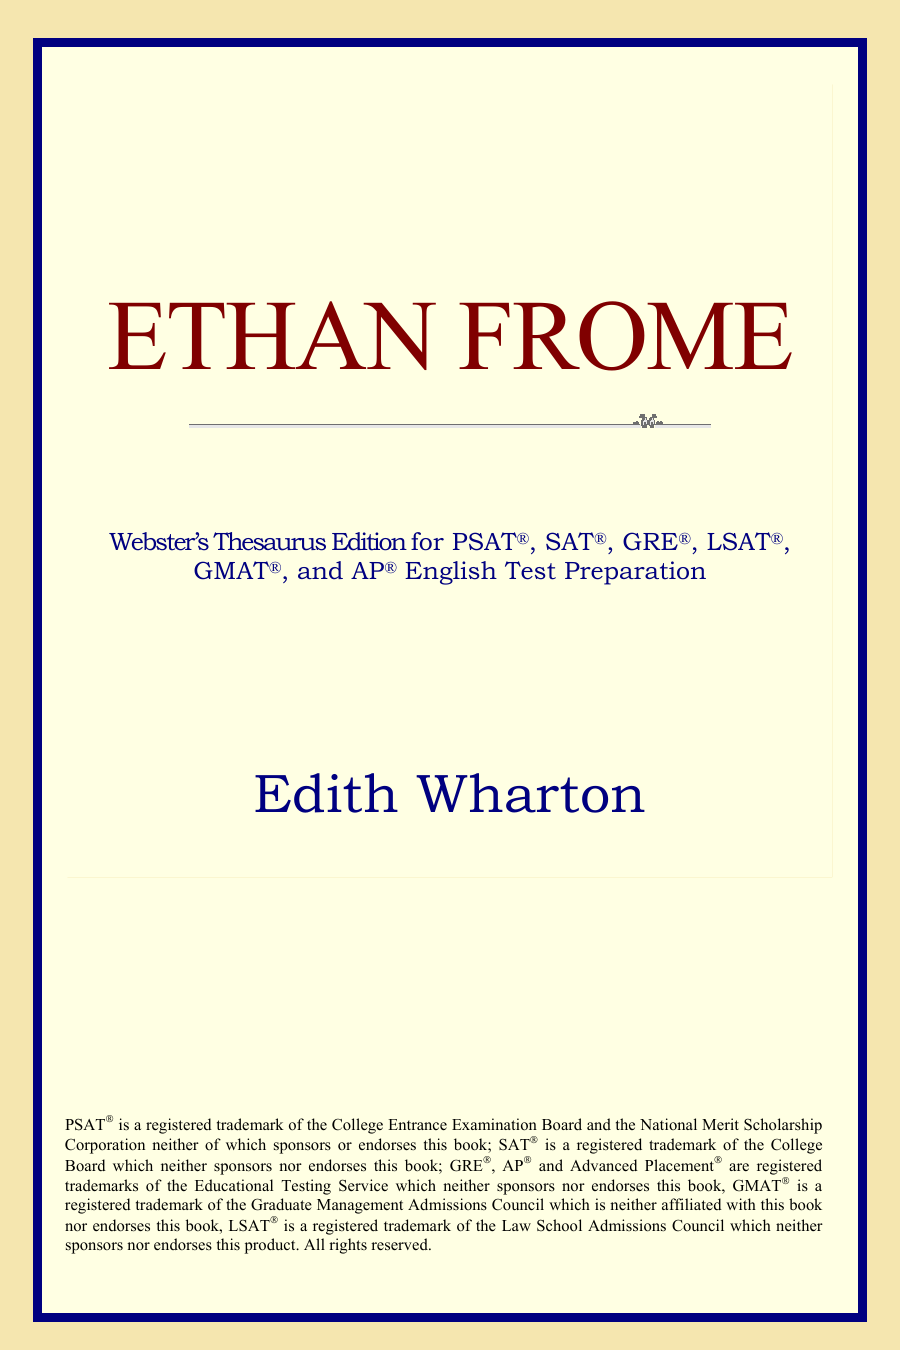 About Ethan Frome by Edith Wharton